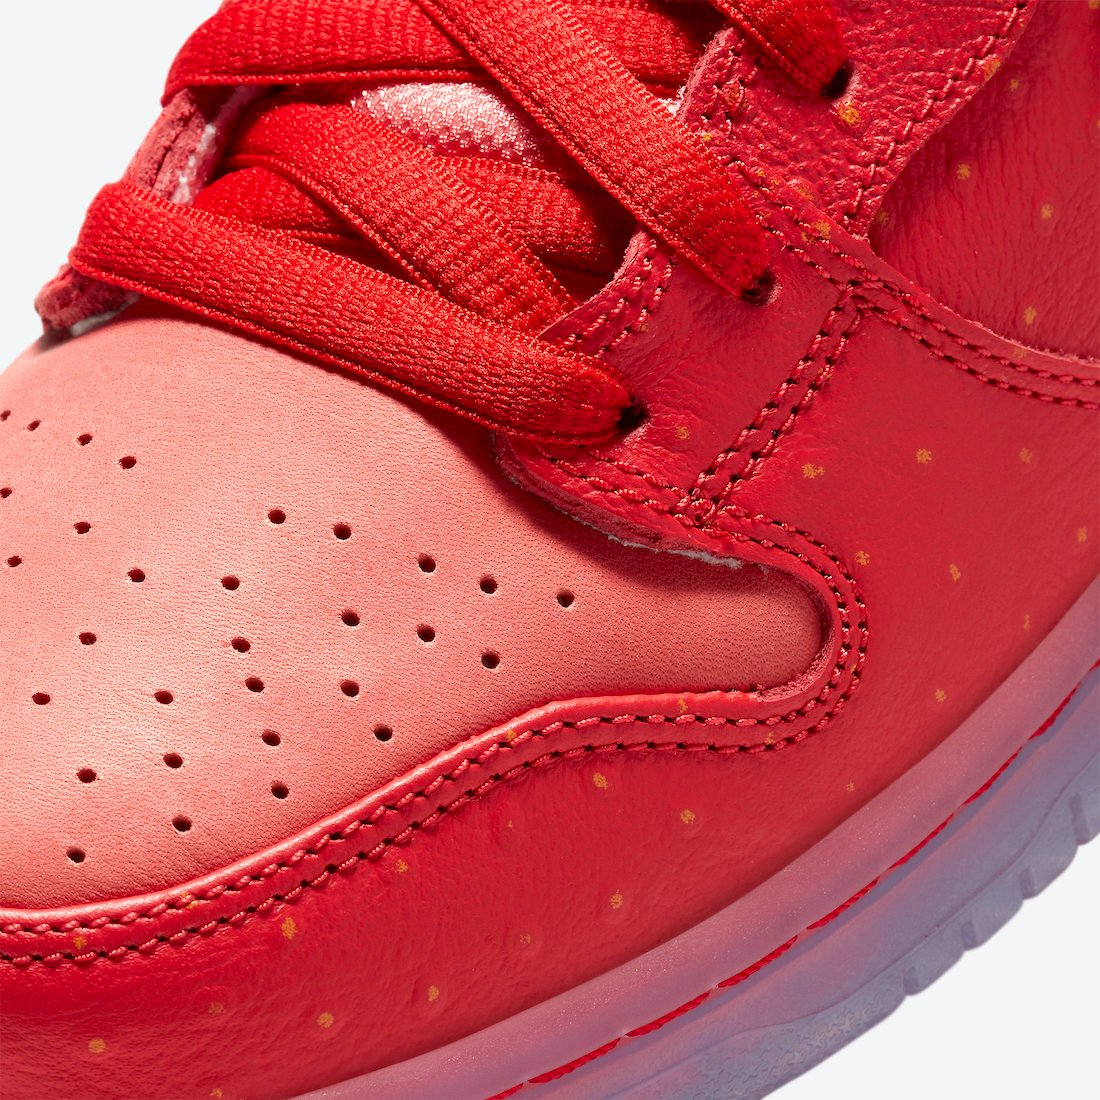 Nike SB Dunk High Strawberry Cough CW7093-600 Release Info Price